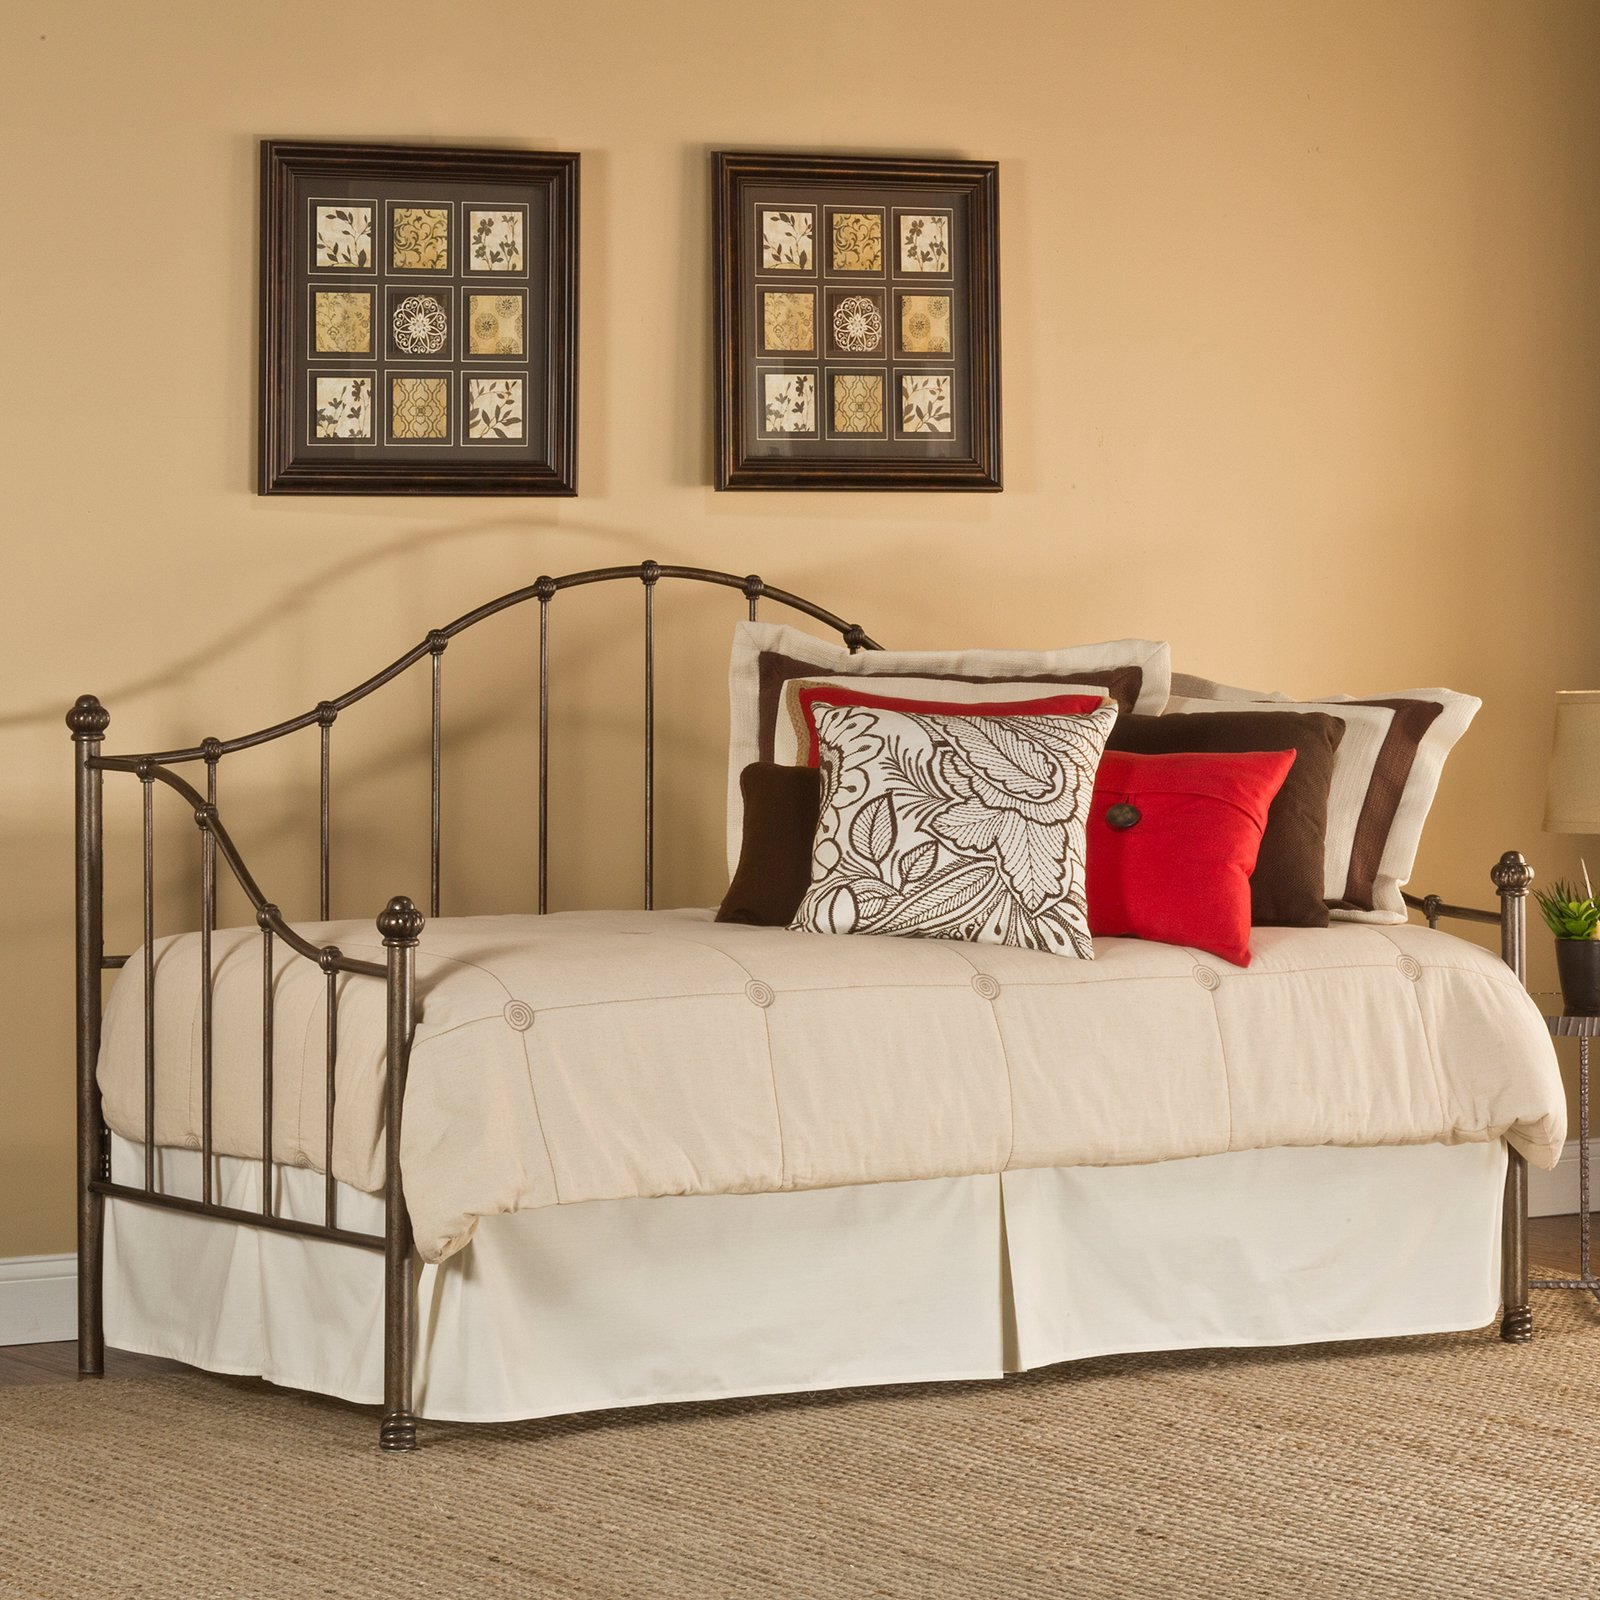 Hillsdale Furniture Amy Day Bed by Hillsdale Furniture